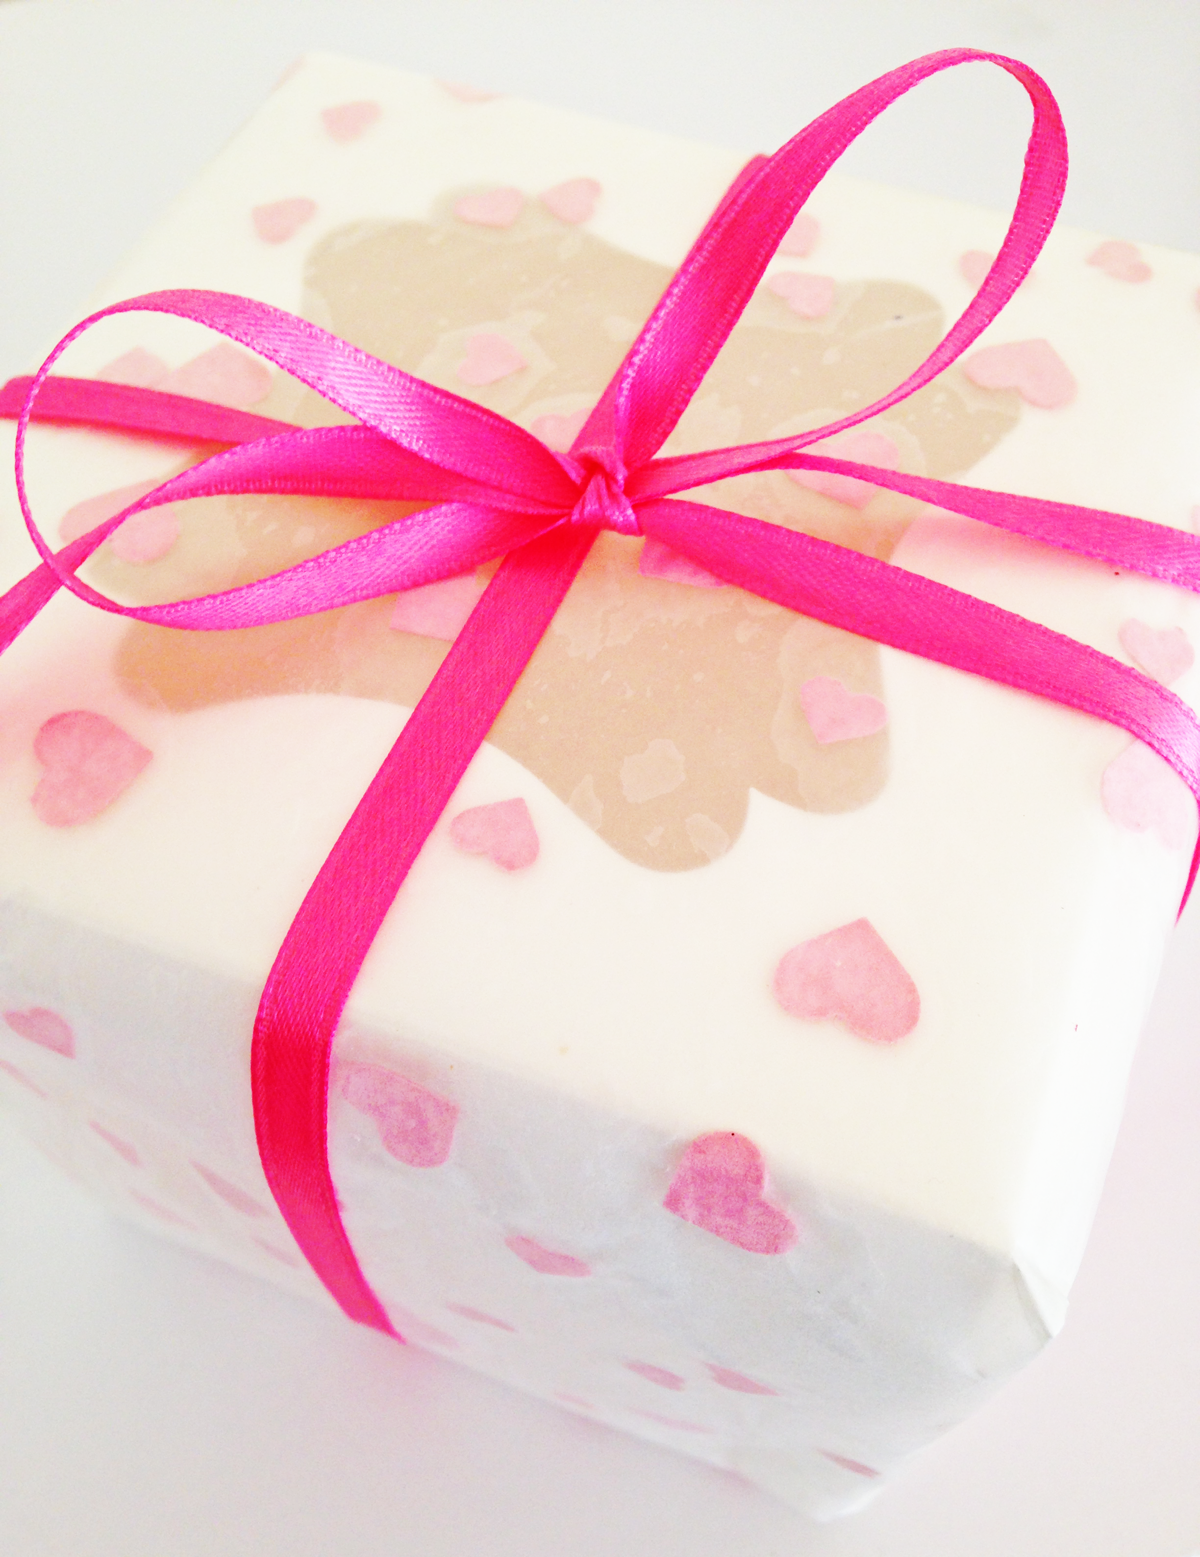 diy valentines day heart wrapping paper - Valentines Day Wrapping Paper